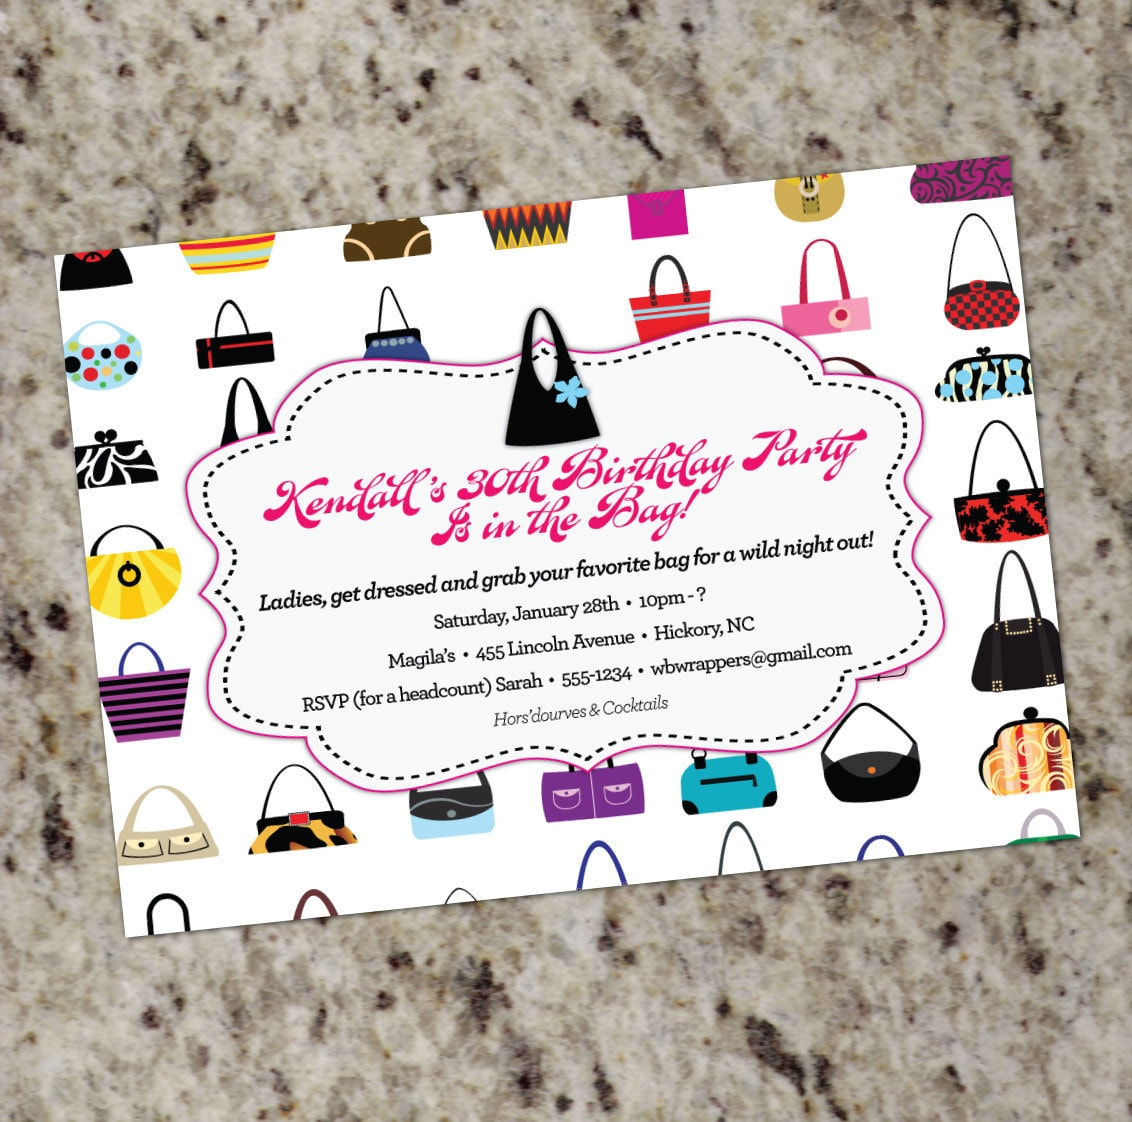 HANDBAGS GALORE Purse themed Invitations Any Occasion